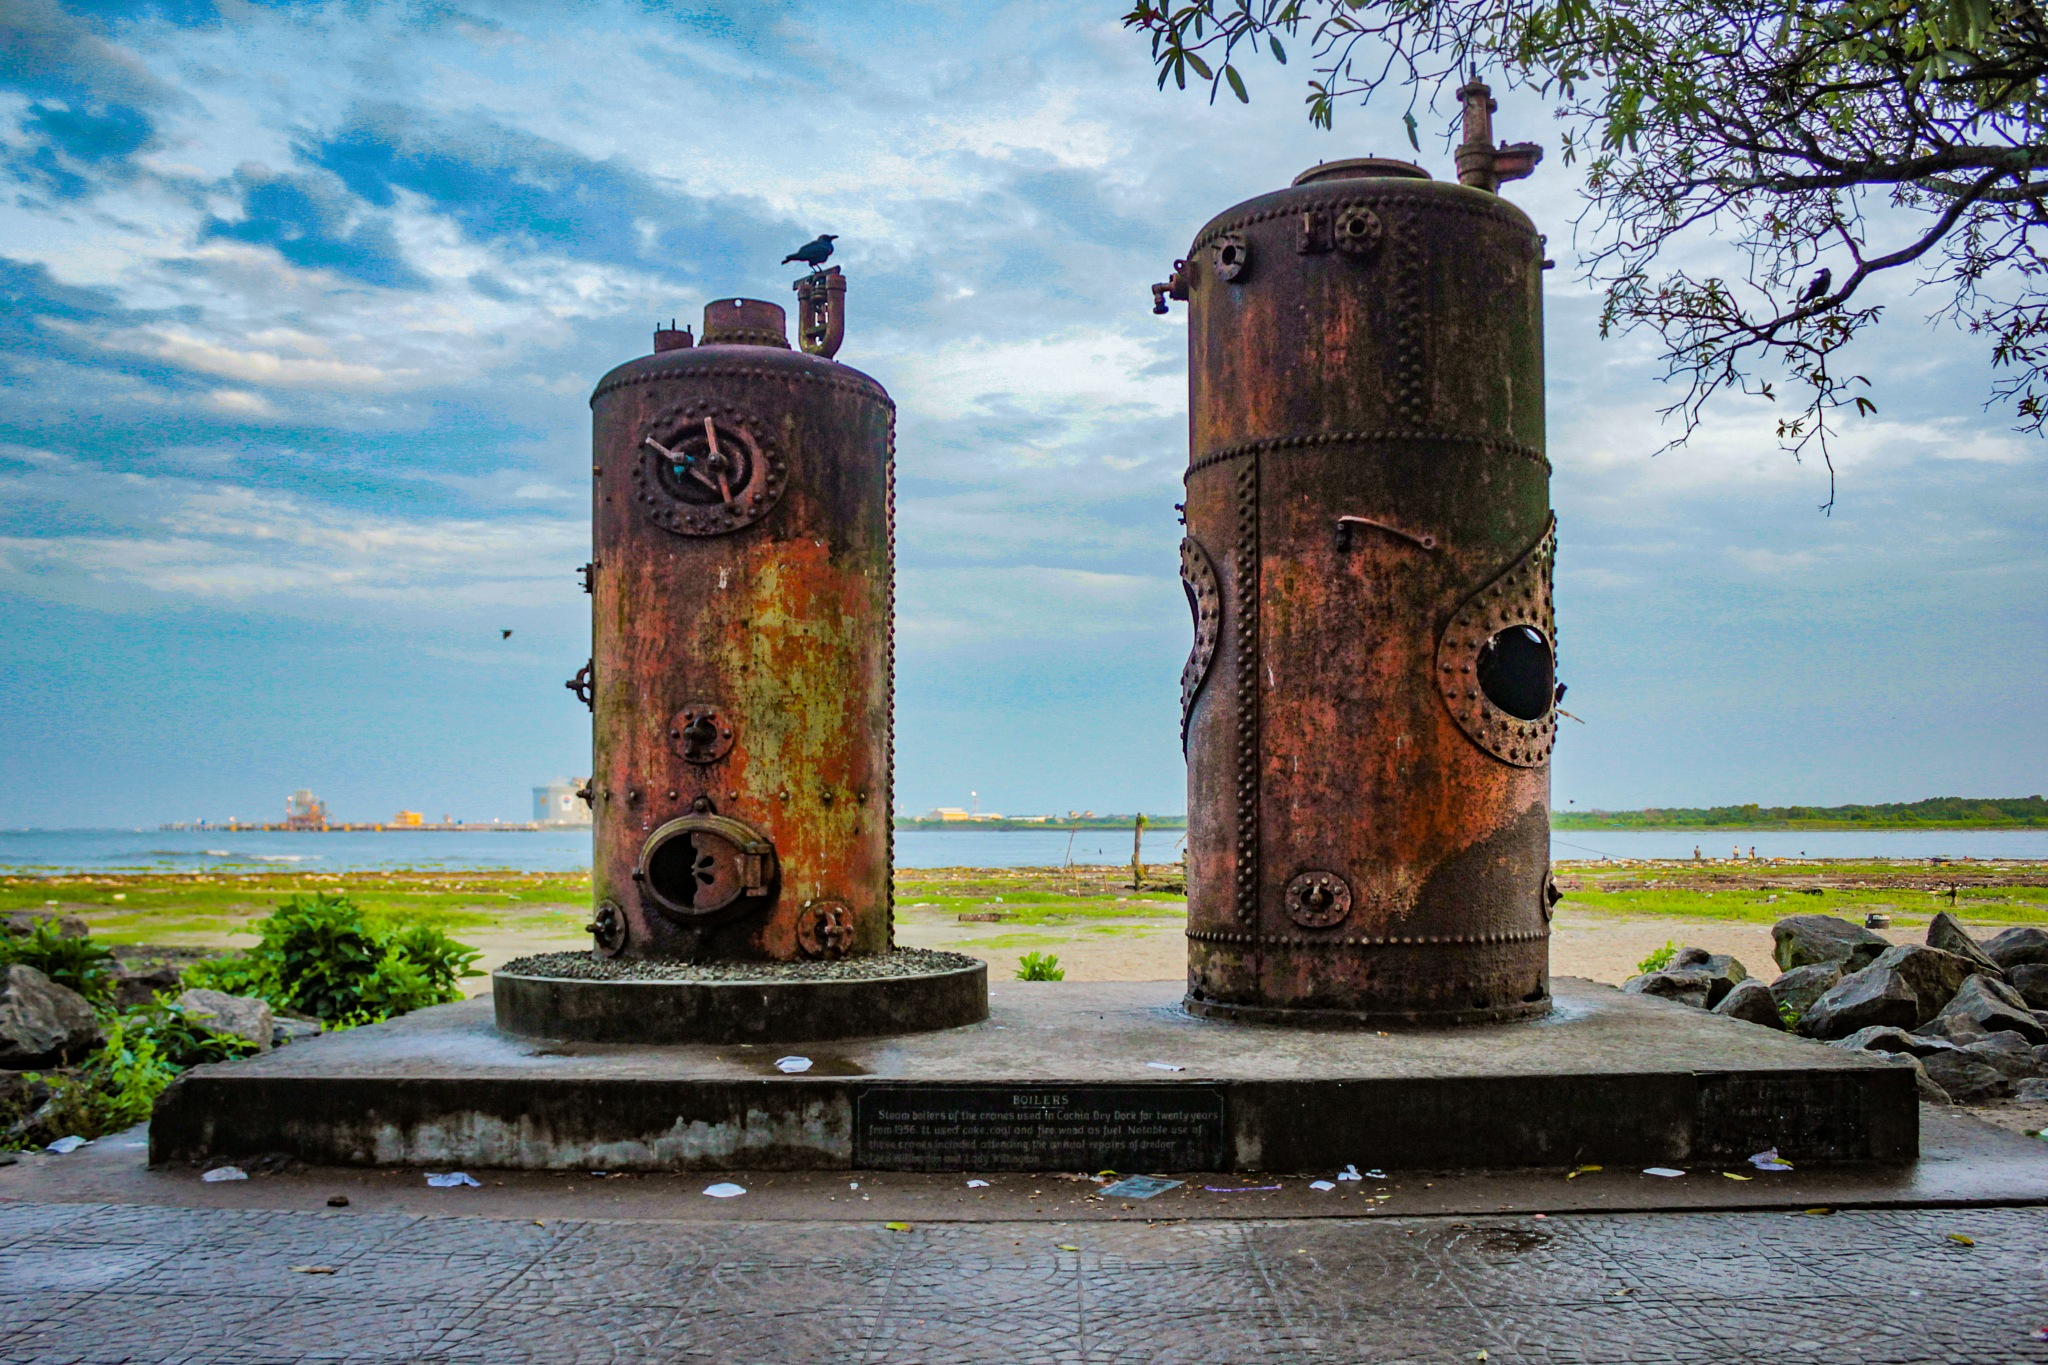 Abandoned Boilers by Siddharth